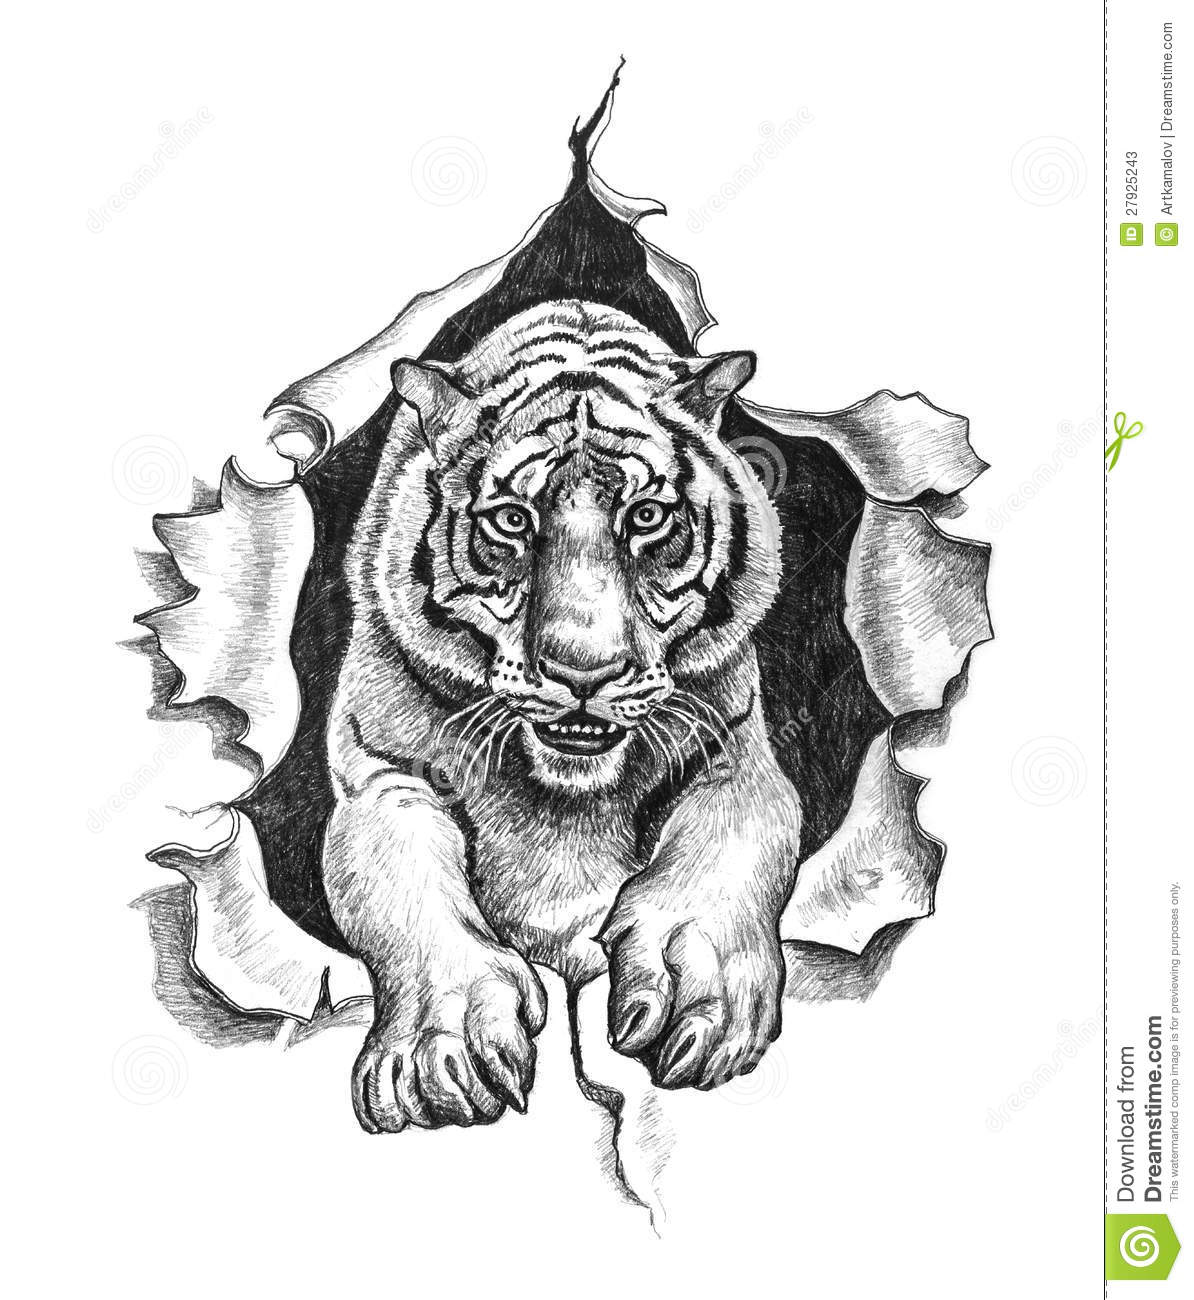 Dessin au crayon d 39 un tigre illustration stock illustration du illustration effectu 27925243 - Image dessin tigre ...